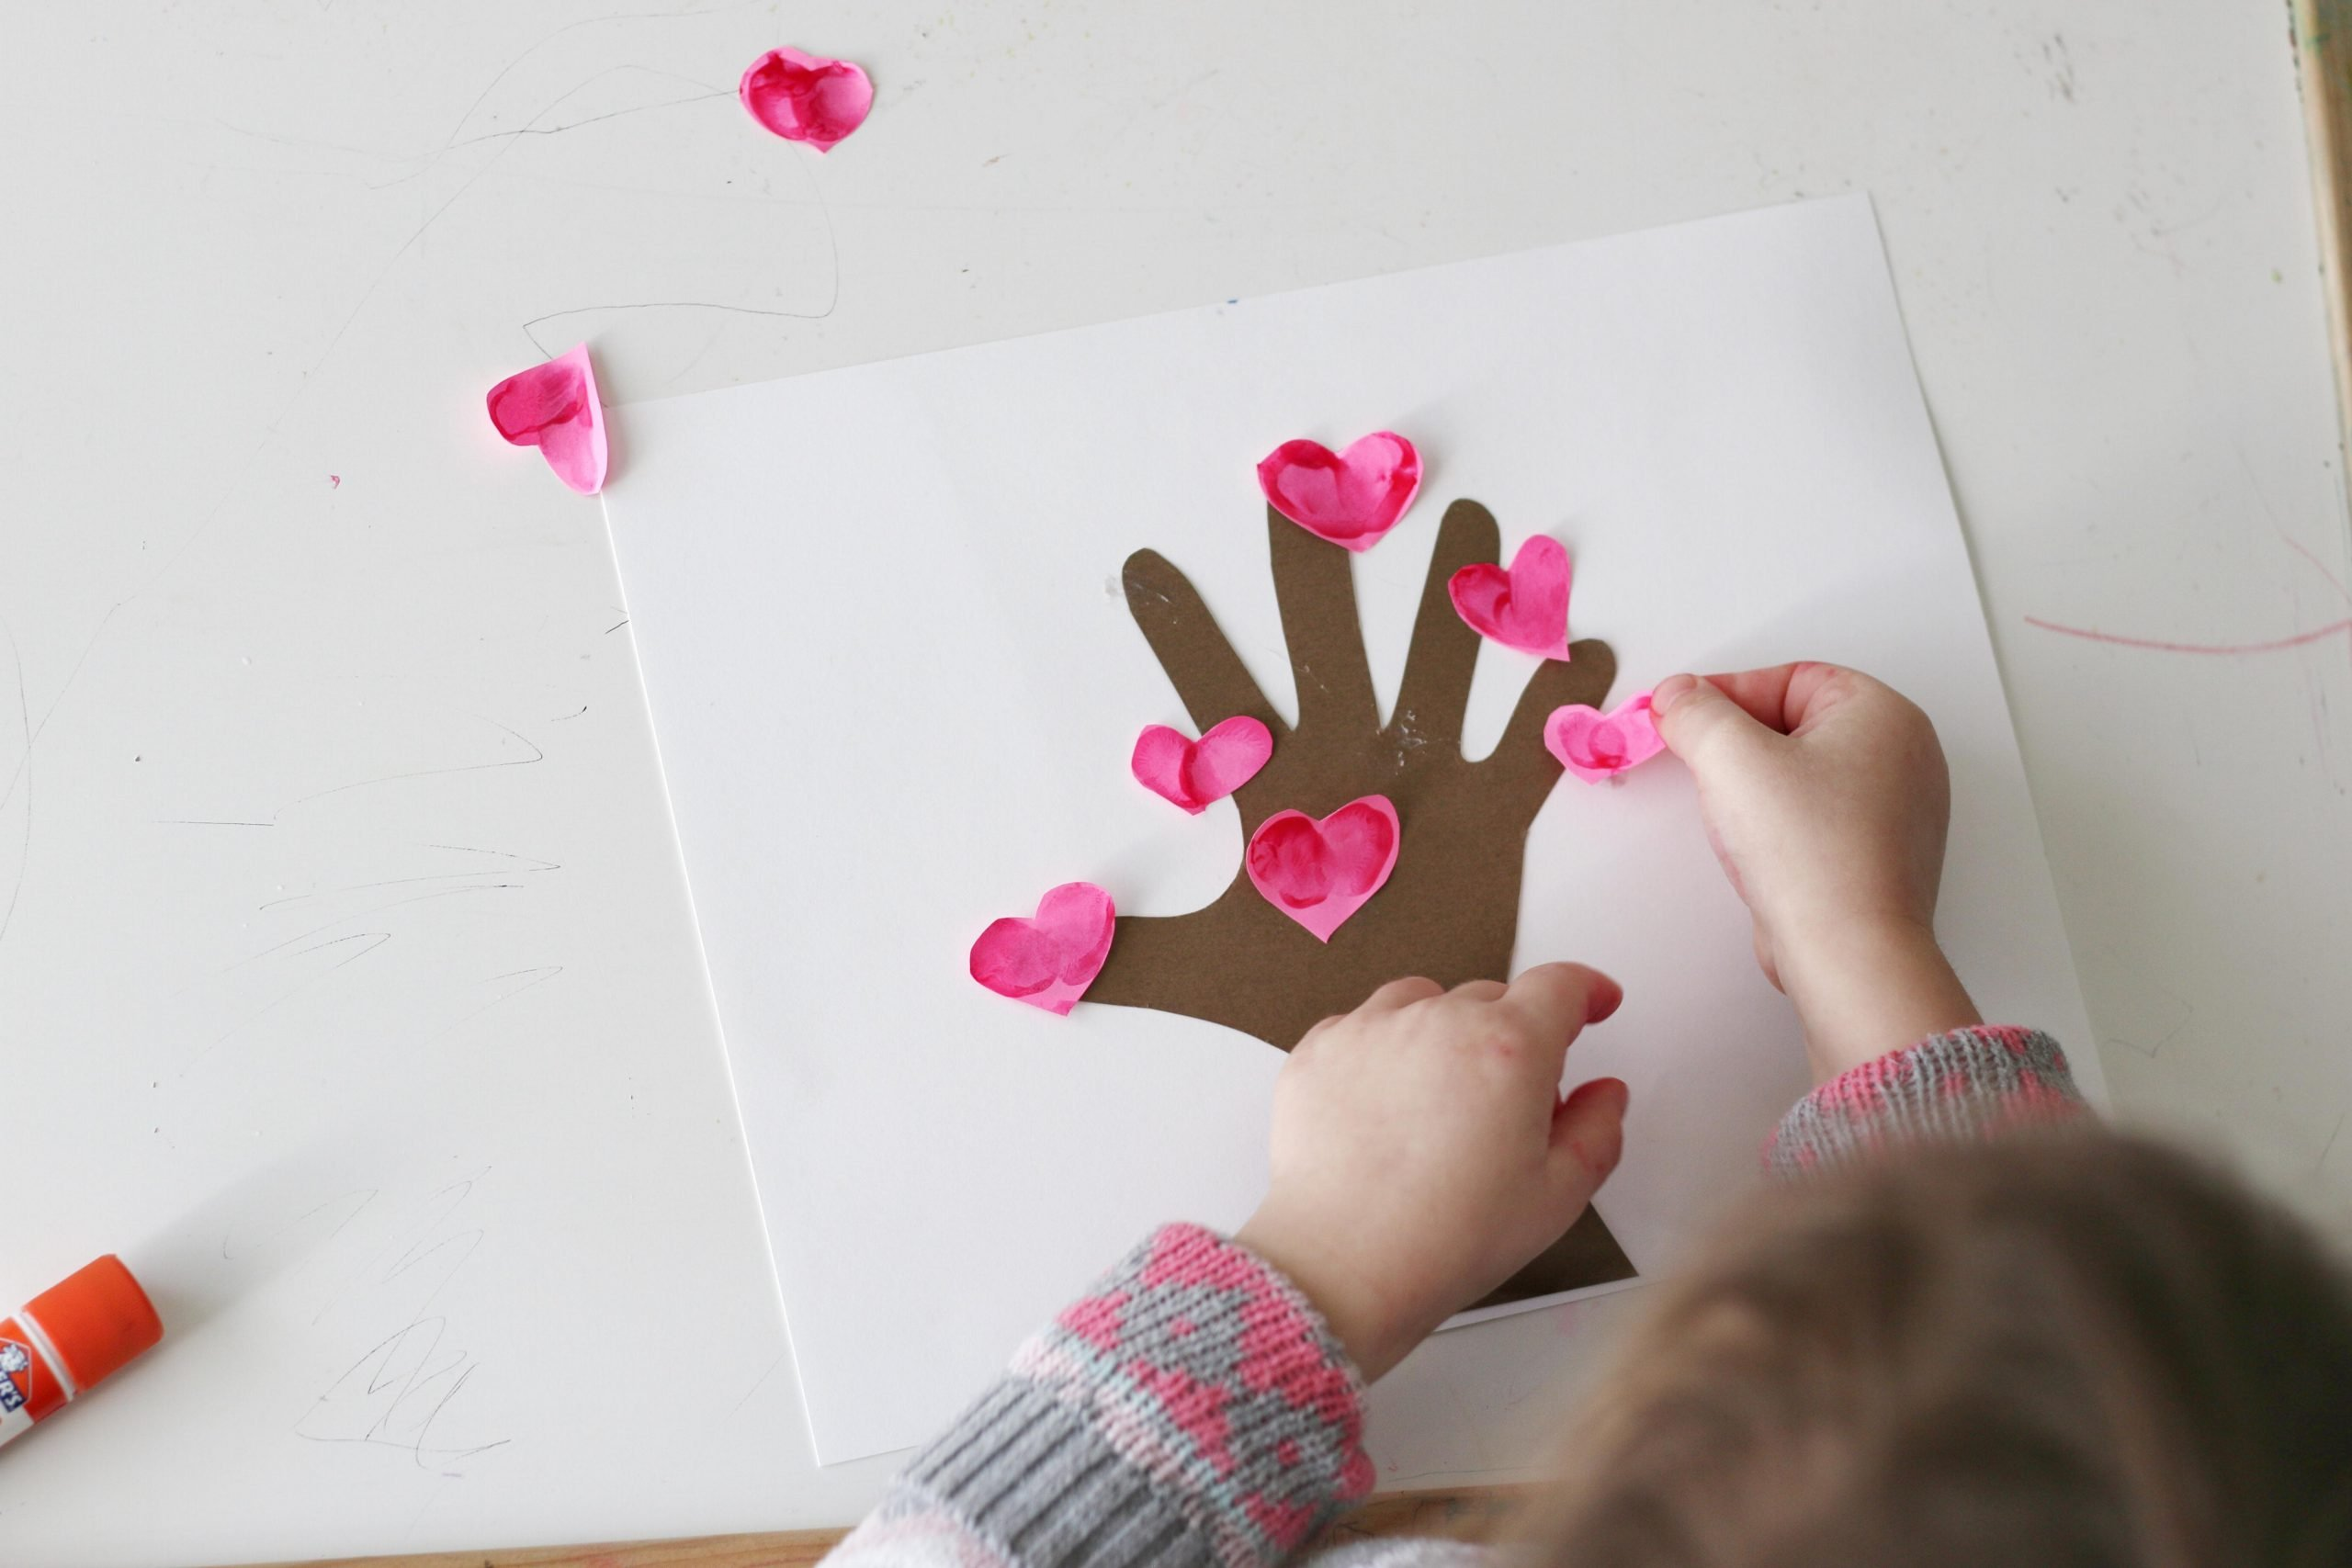 Thumbprint Love Tree Valentine's Day Craft